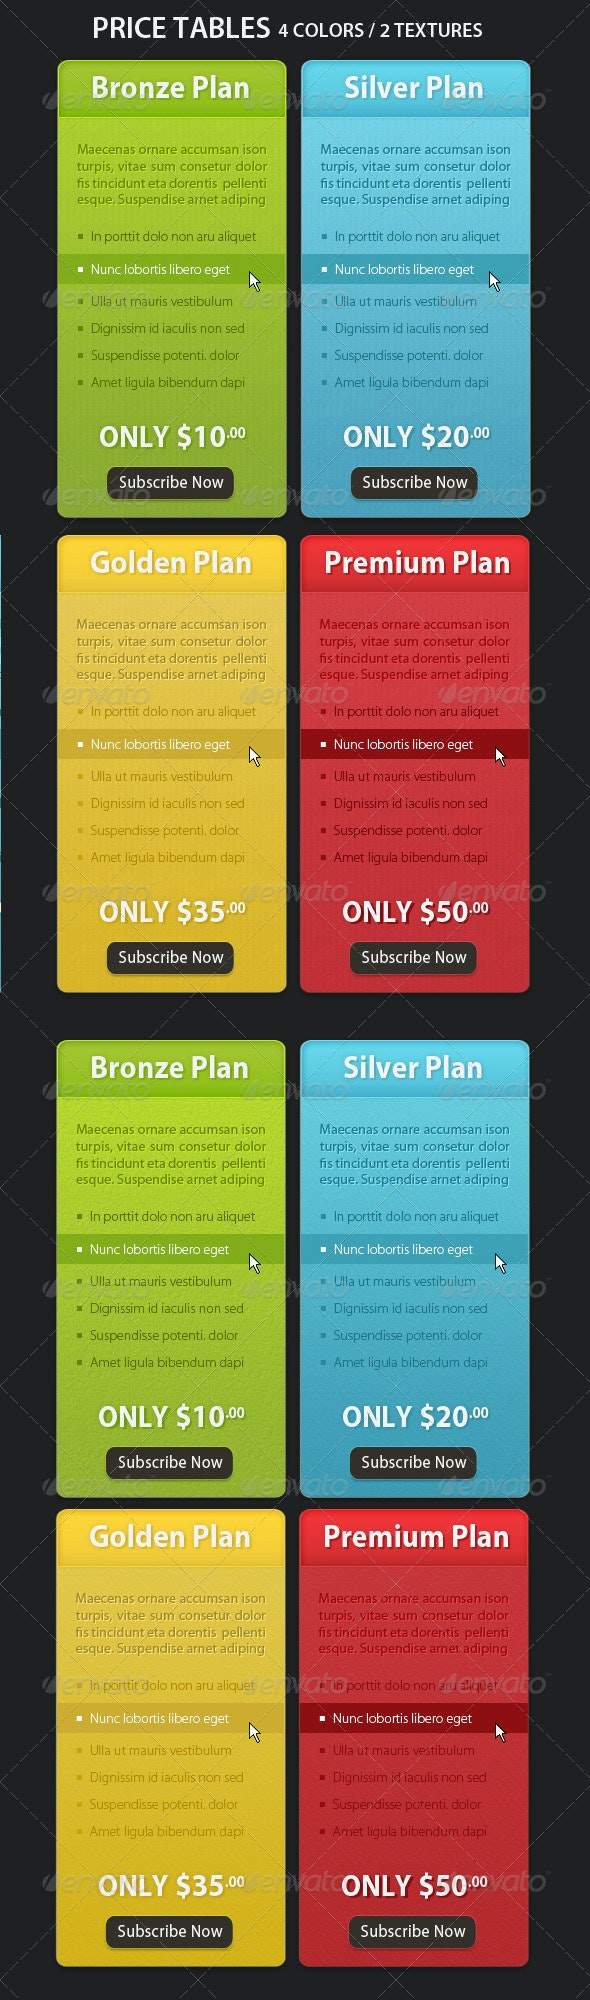 Colorful Price Tables - 2 textures !! - Web Elements